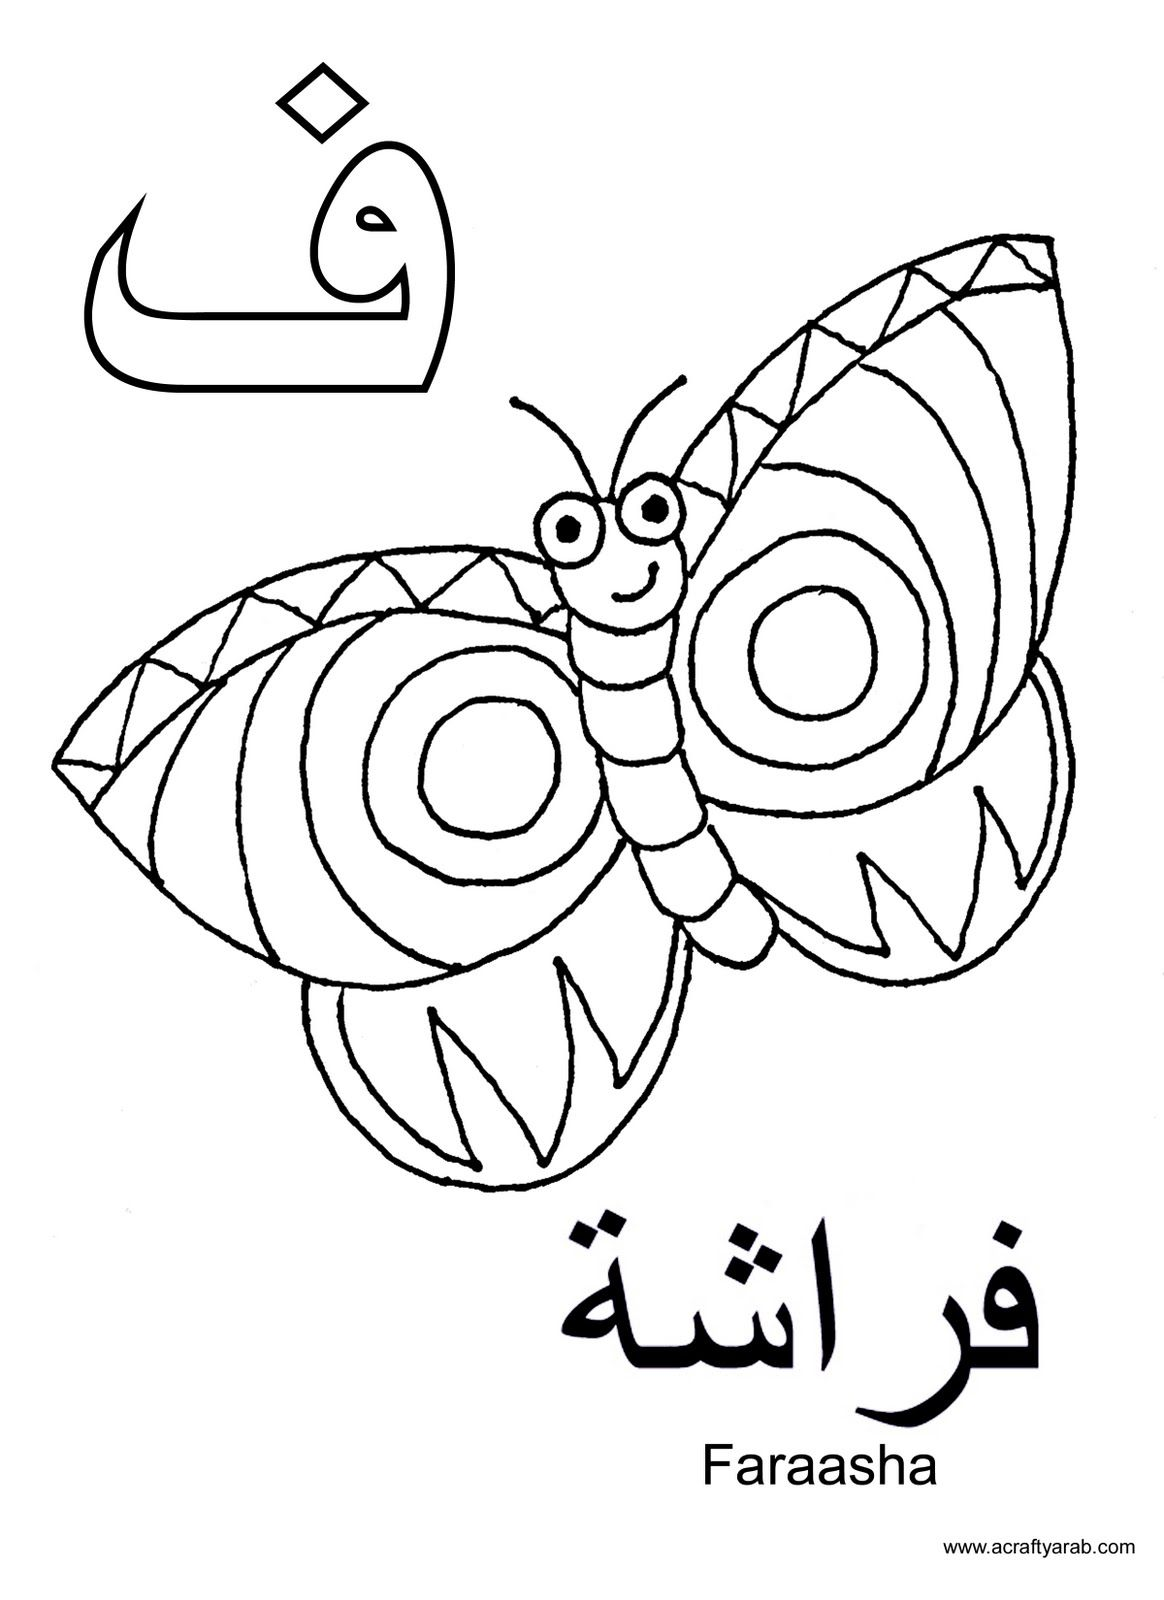 A Crafty Arab Arabic Alphabet Coloring Pages Fa Is For Faraasha Arabic Alphabet Alphabet Coloring Pages Alphabet Coloring